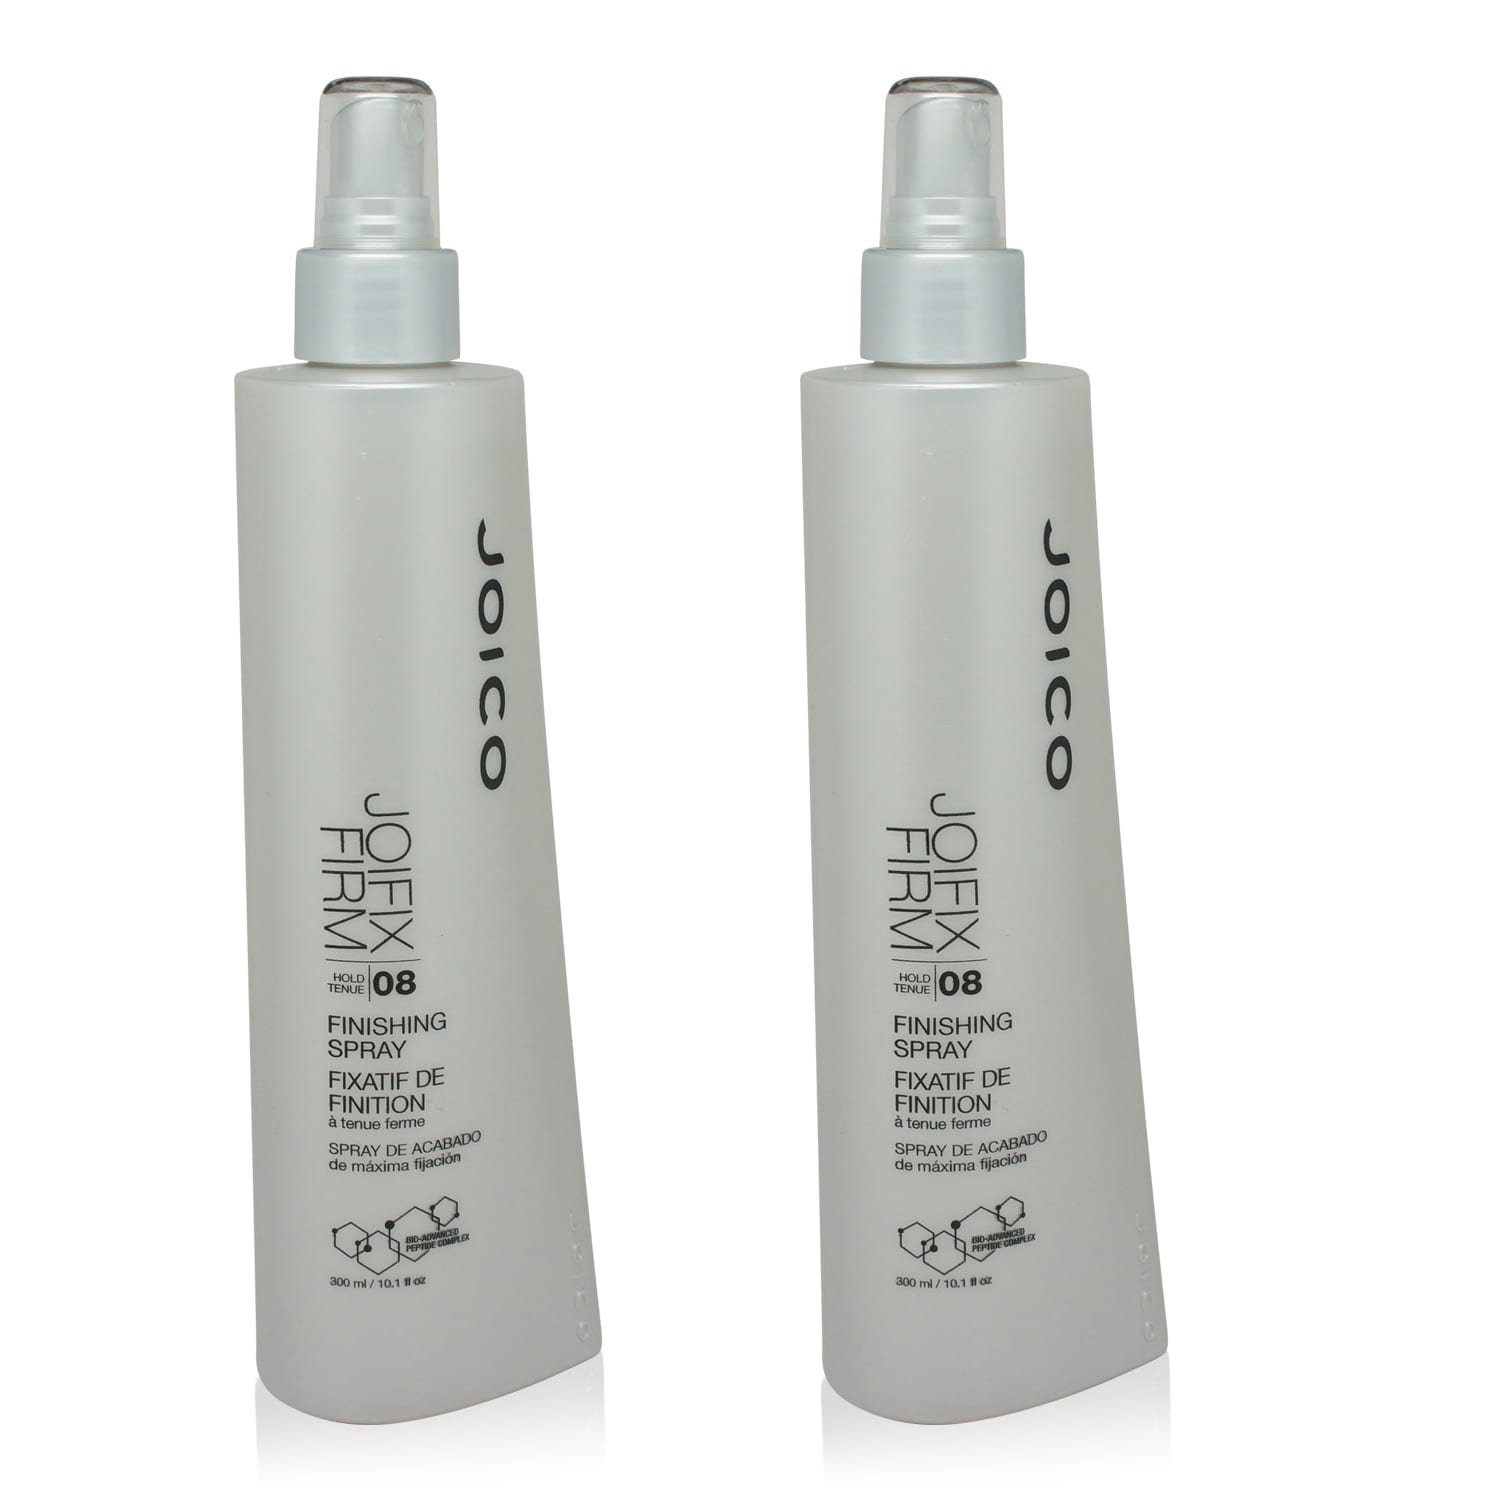 Joico JoiFix Firm Finishing Spray 10.1Oz 2 pack